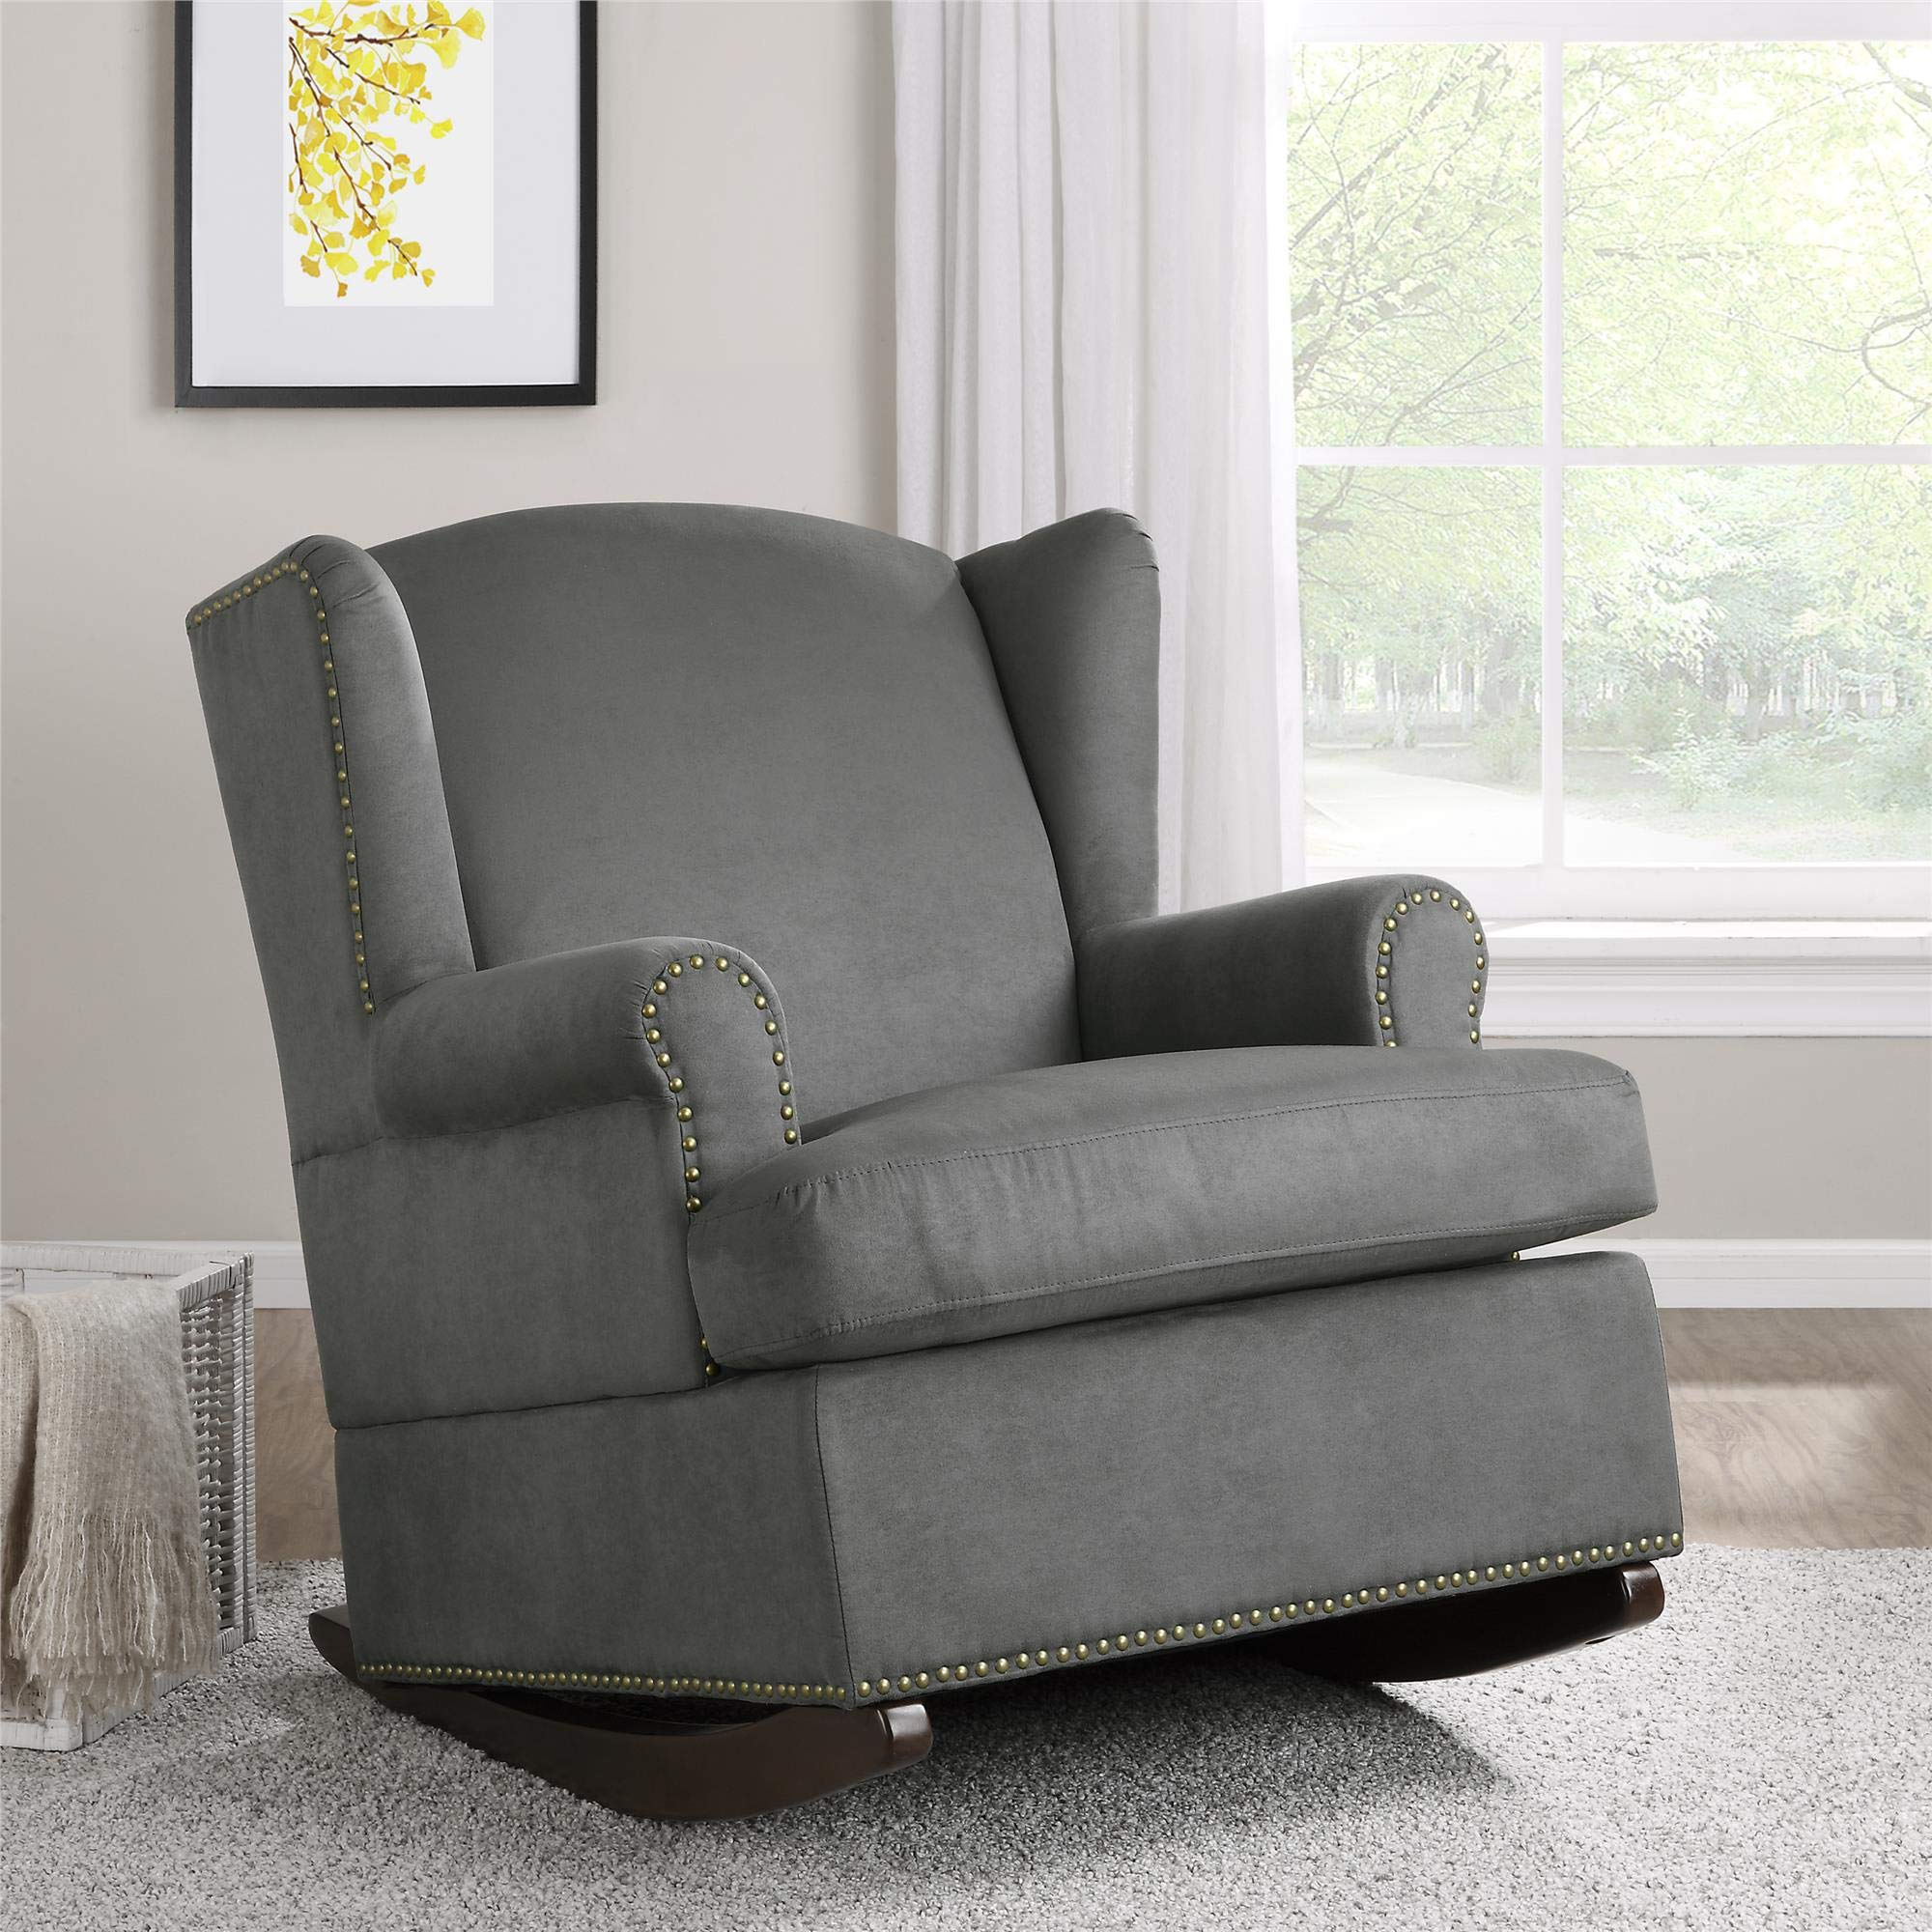 Baby Relax Harlow Wingback Nursery Room Rocker with Nail Heads, Charcoal Gray by Baby Relax